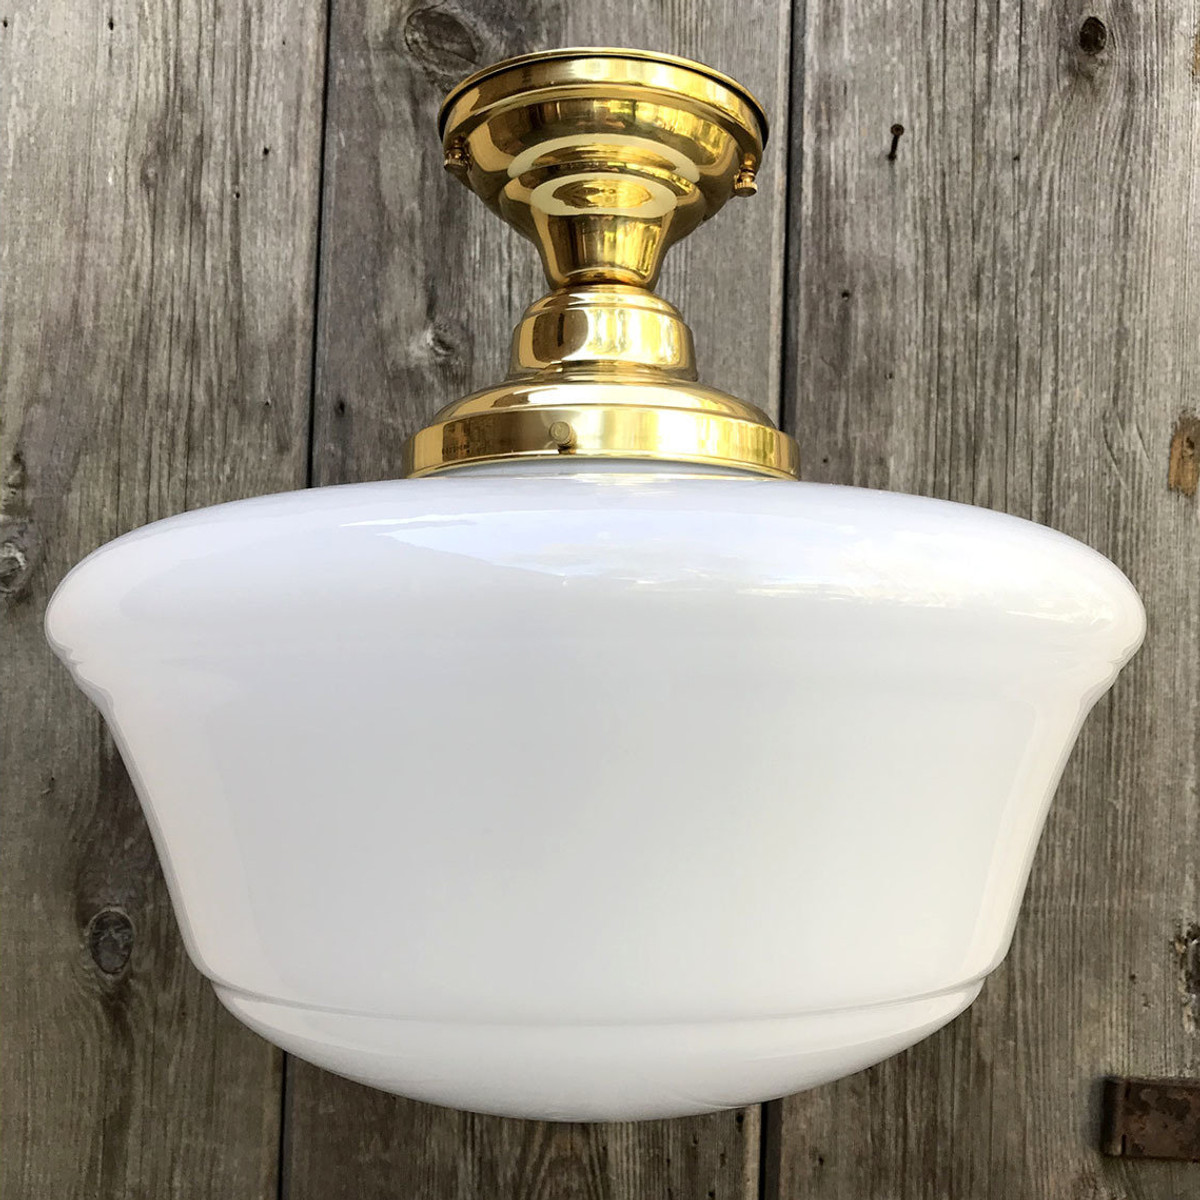 L17210 - Antique Schoolhouse Shade on Brass Flush Mount Fixture